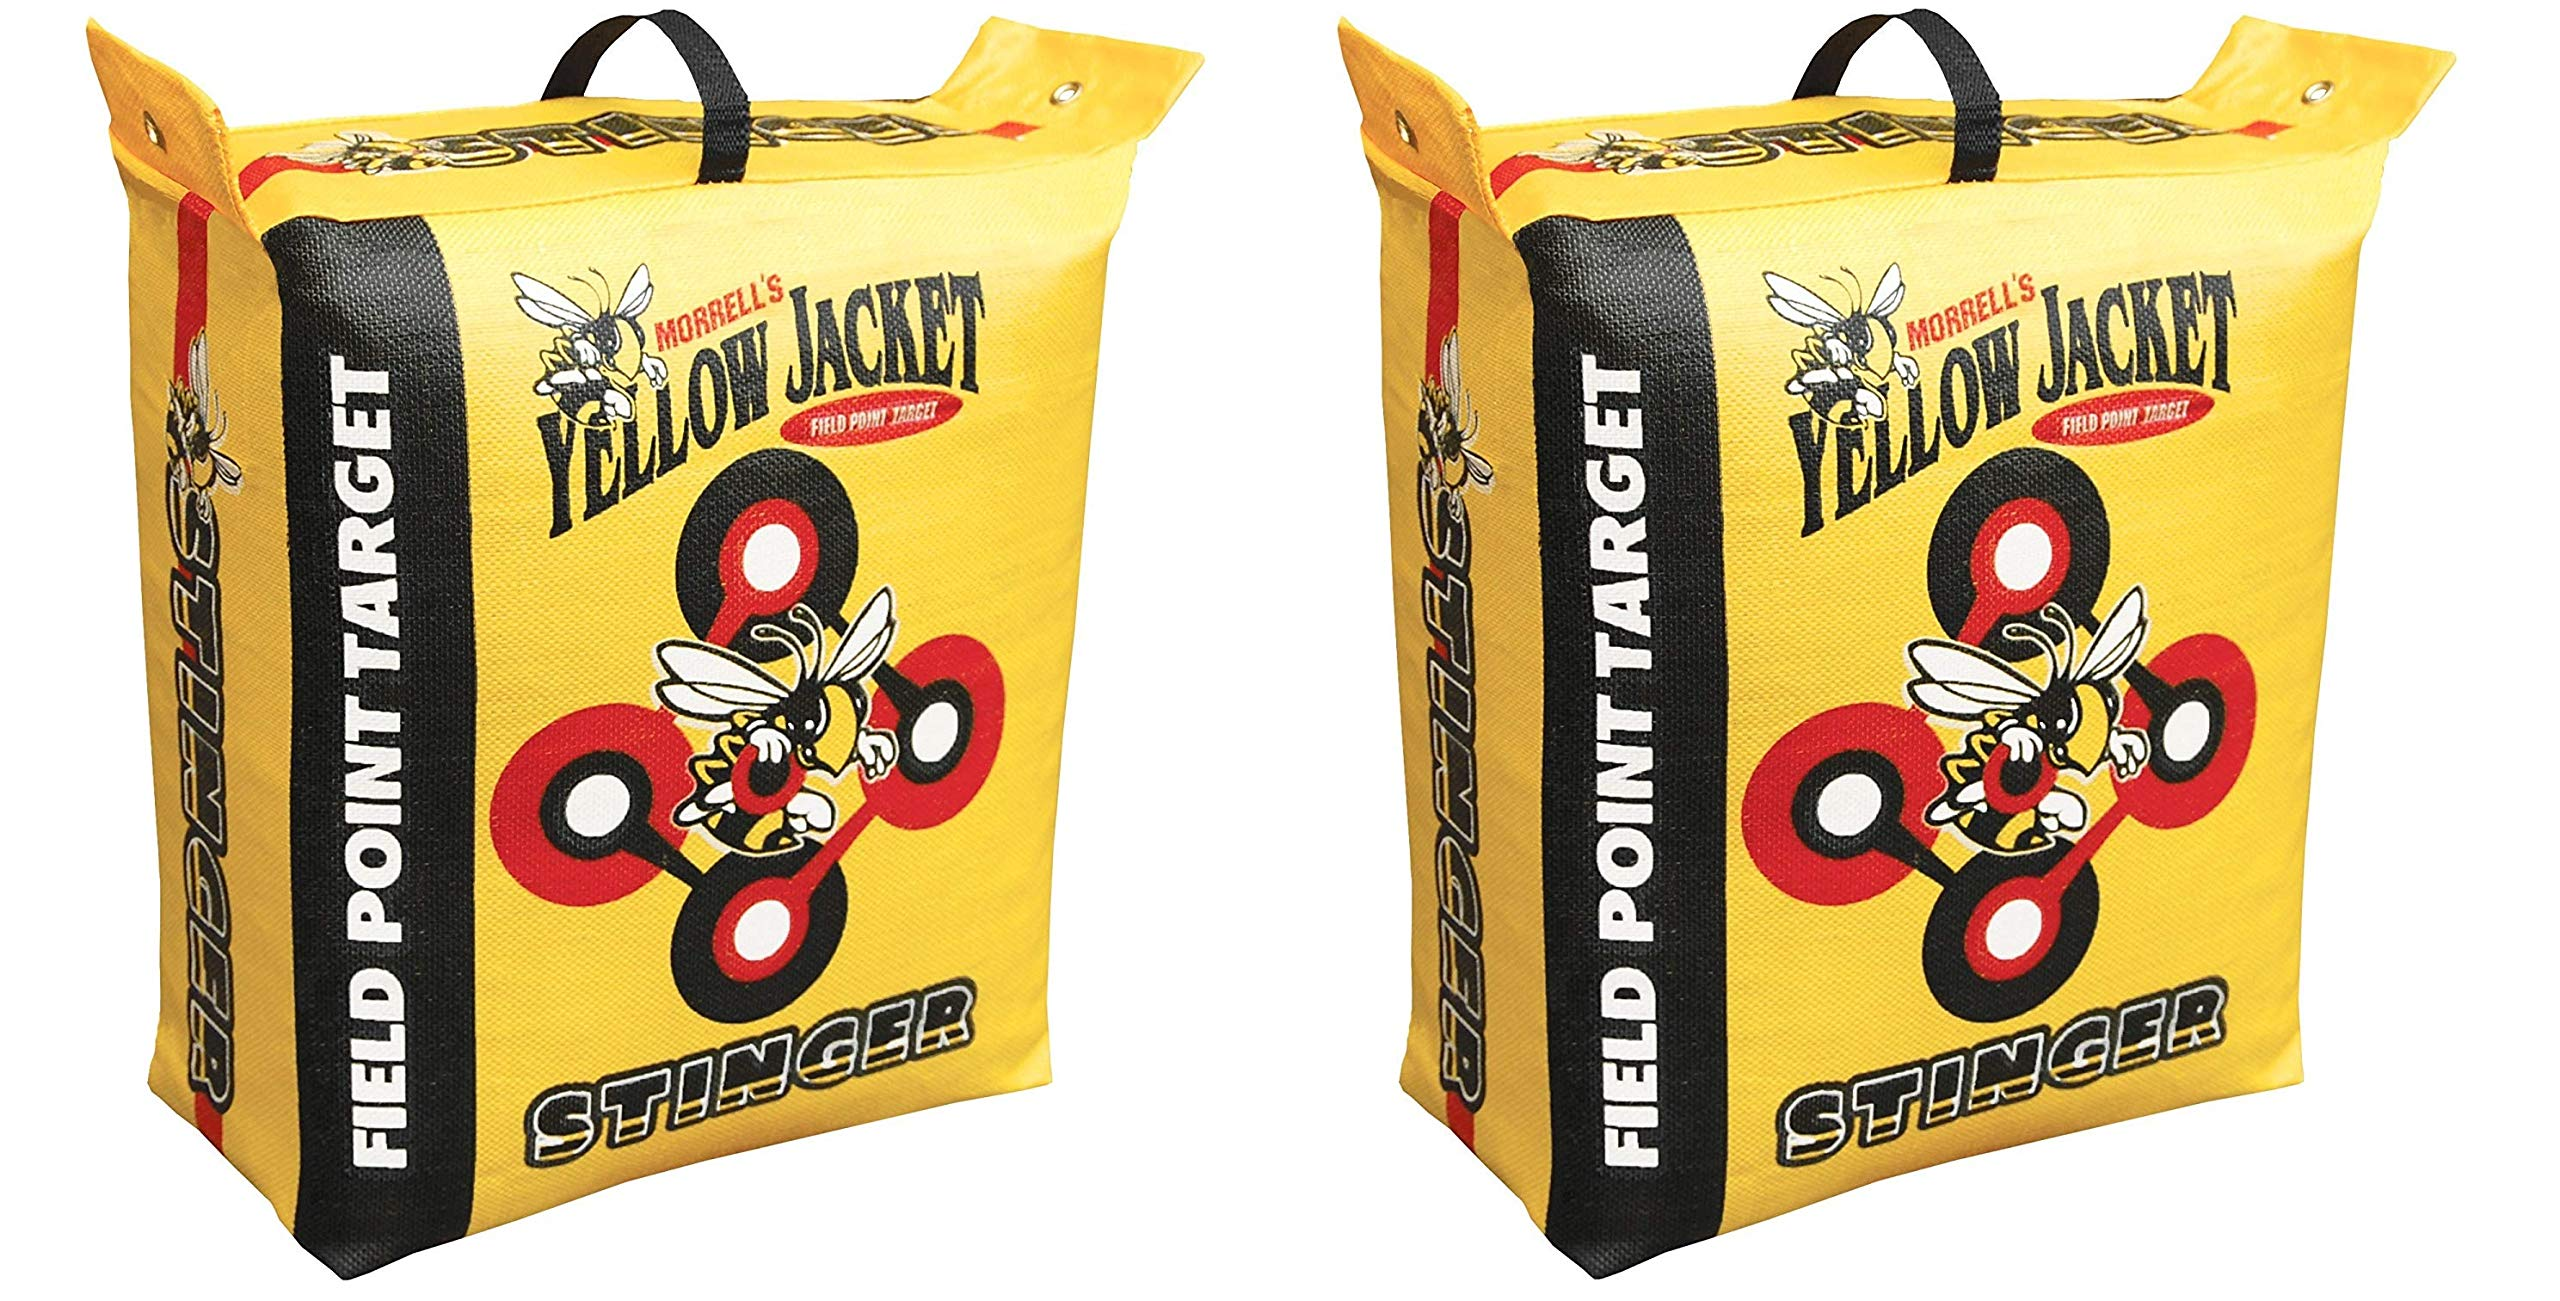 Morrell Yellow Jacket Stinger Field Point Bag Archery Target - Great for Compound and Traditional Bows (2-Pack)